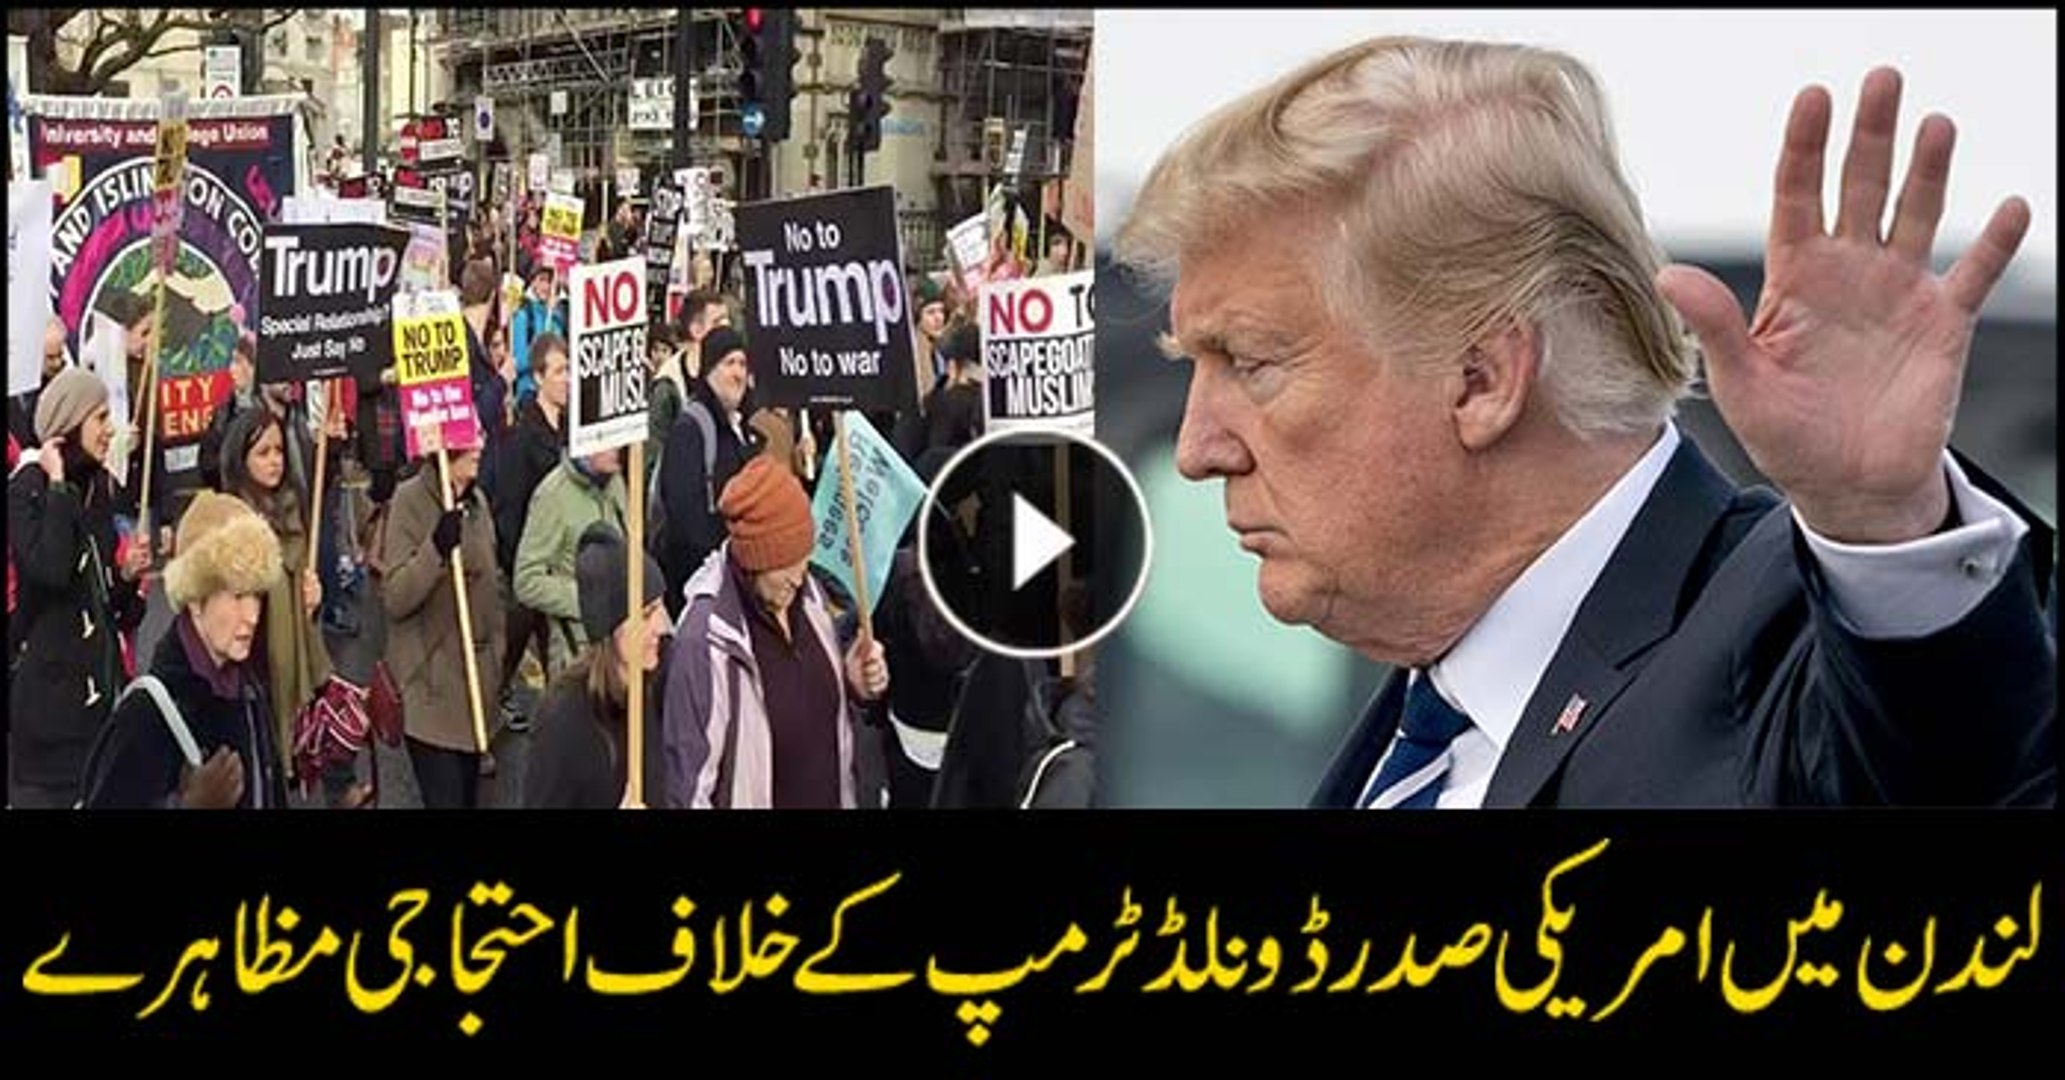 Strikes in London against US president Trump